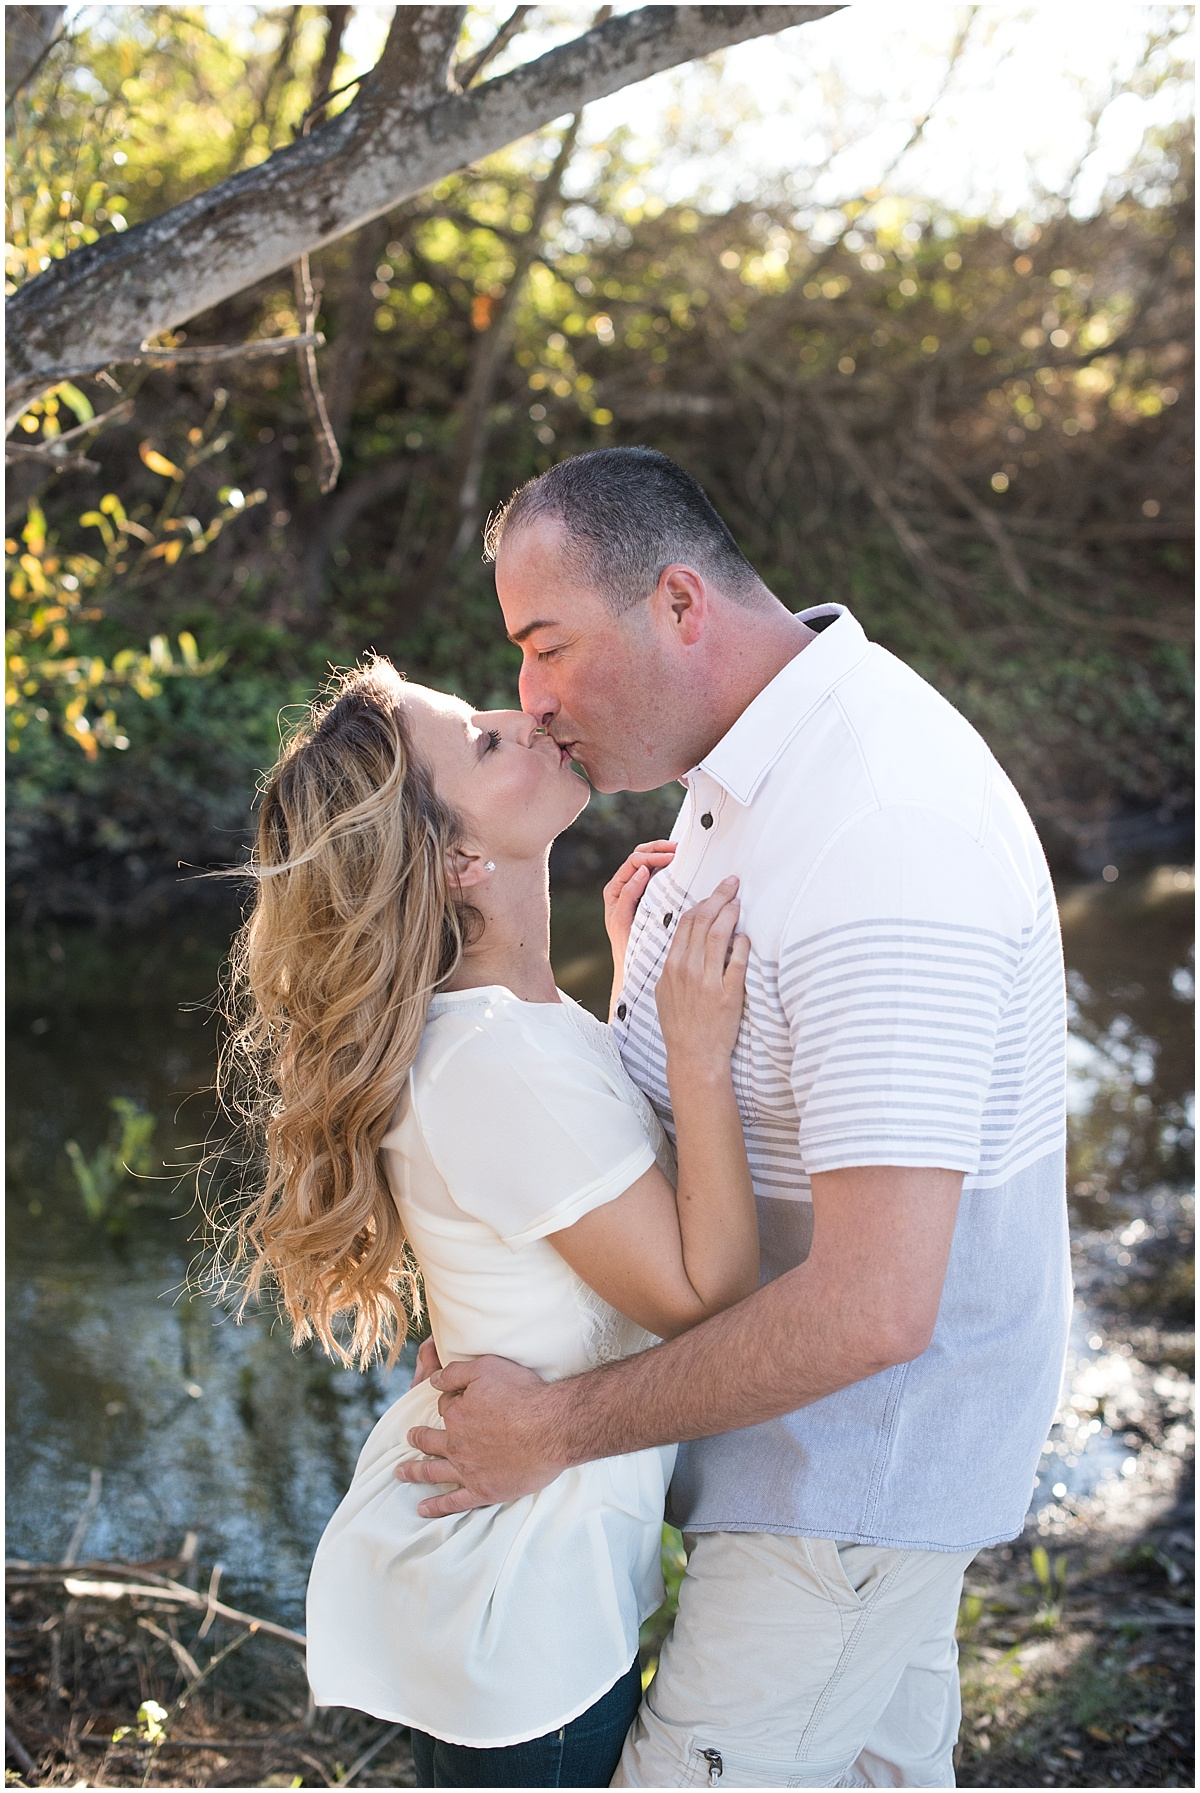 Engagement Shoot at Monarch Butterfly Grove in Pismo Beach, CA